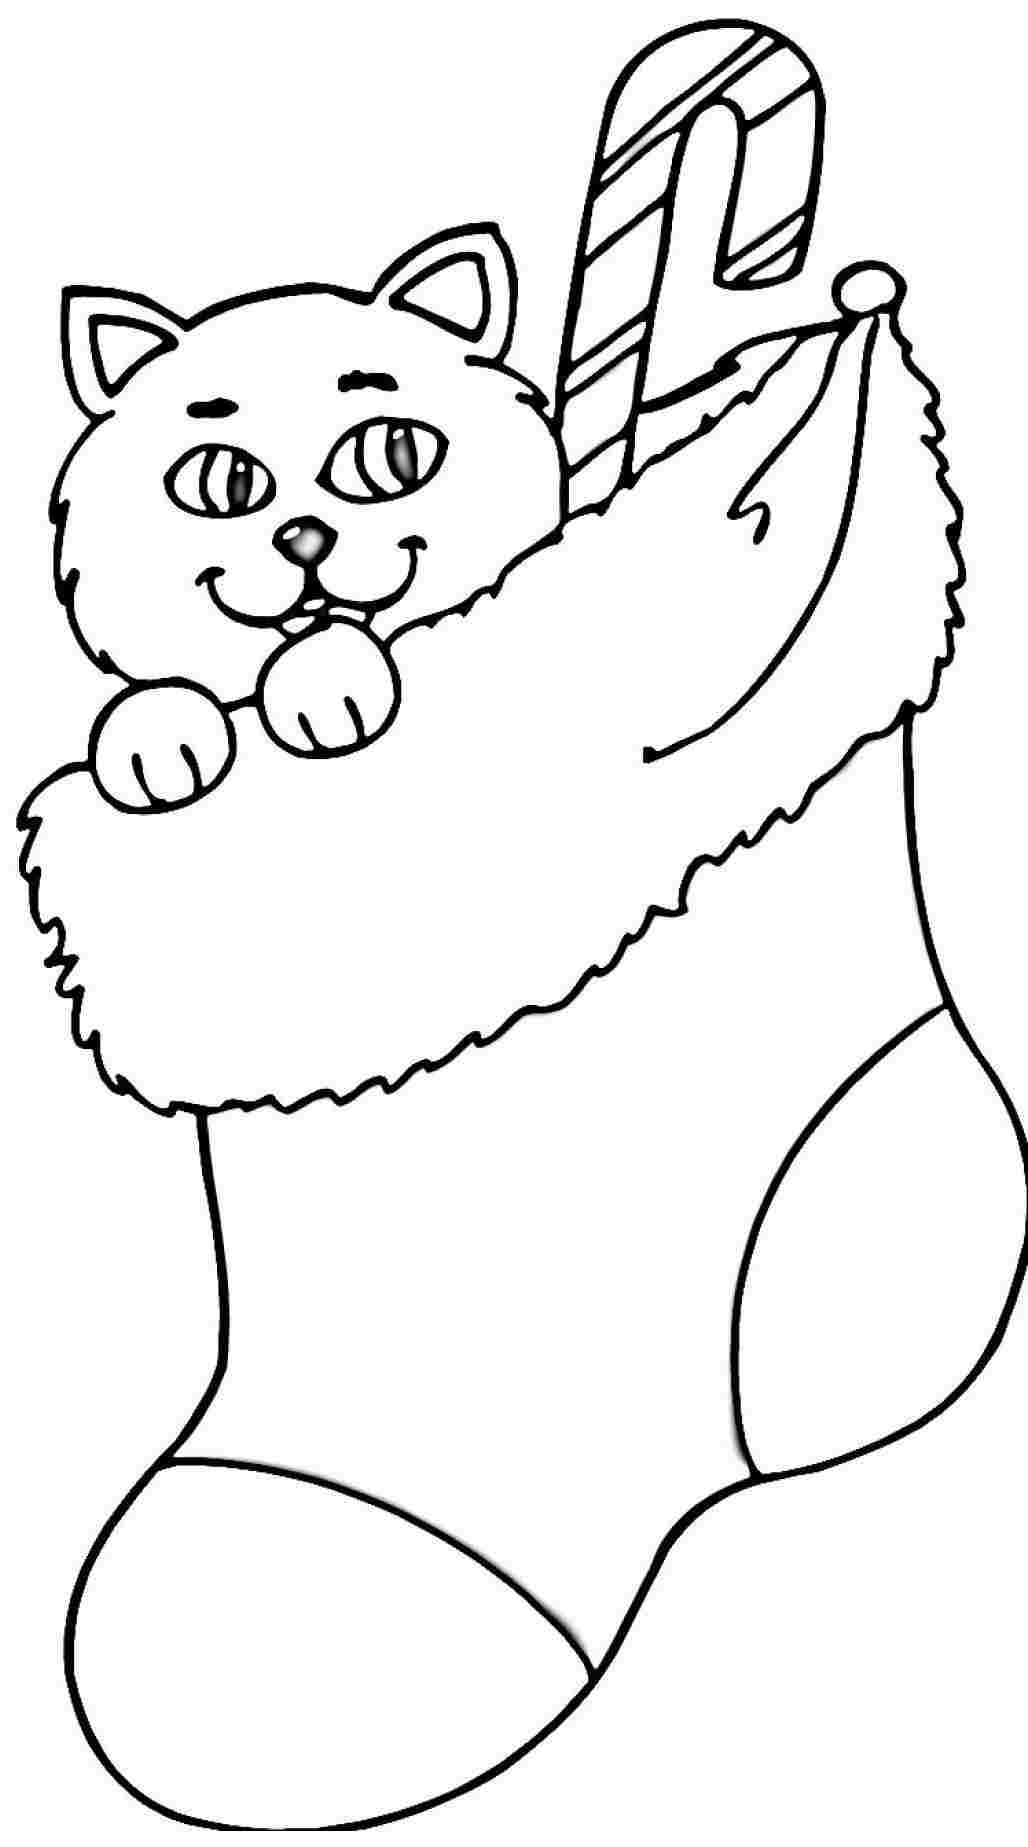 Printable Christmas Cat Coloring Pages With Stocking Page On Dltk Archives And Auto In